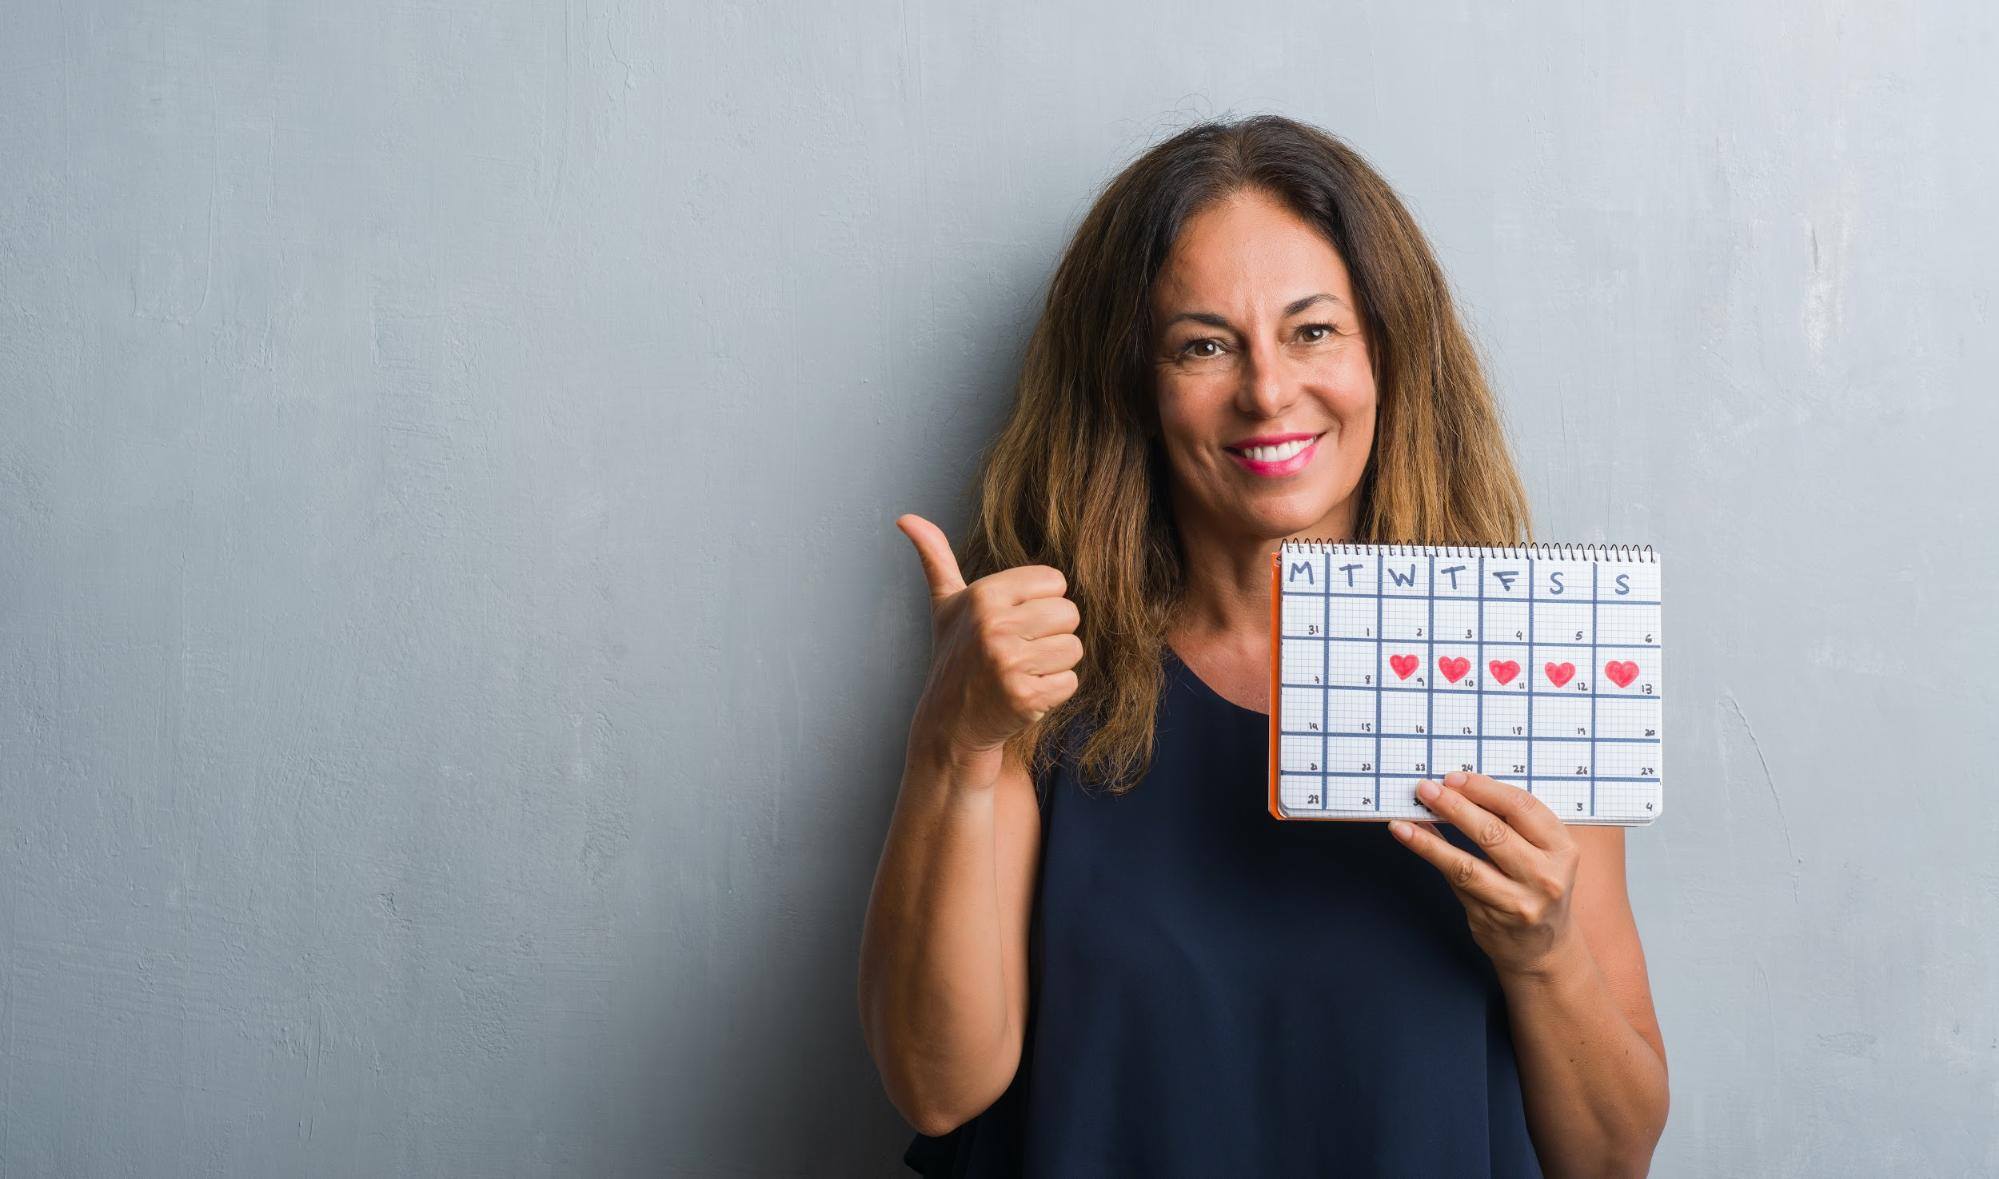 Smiling woman giving a thumbs up while holding her period calendar